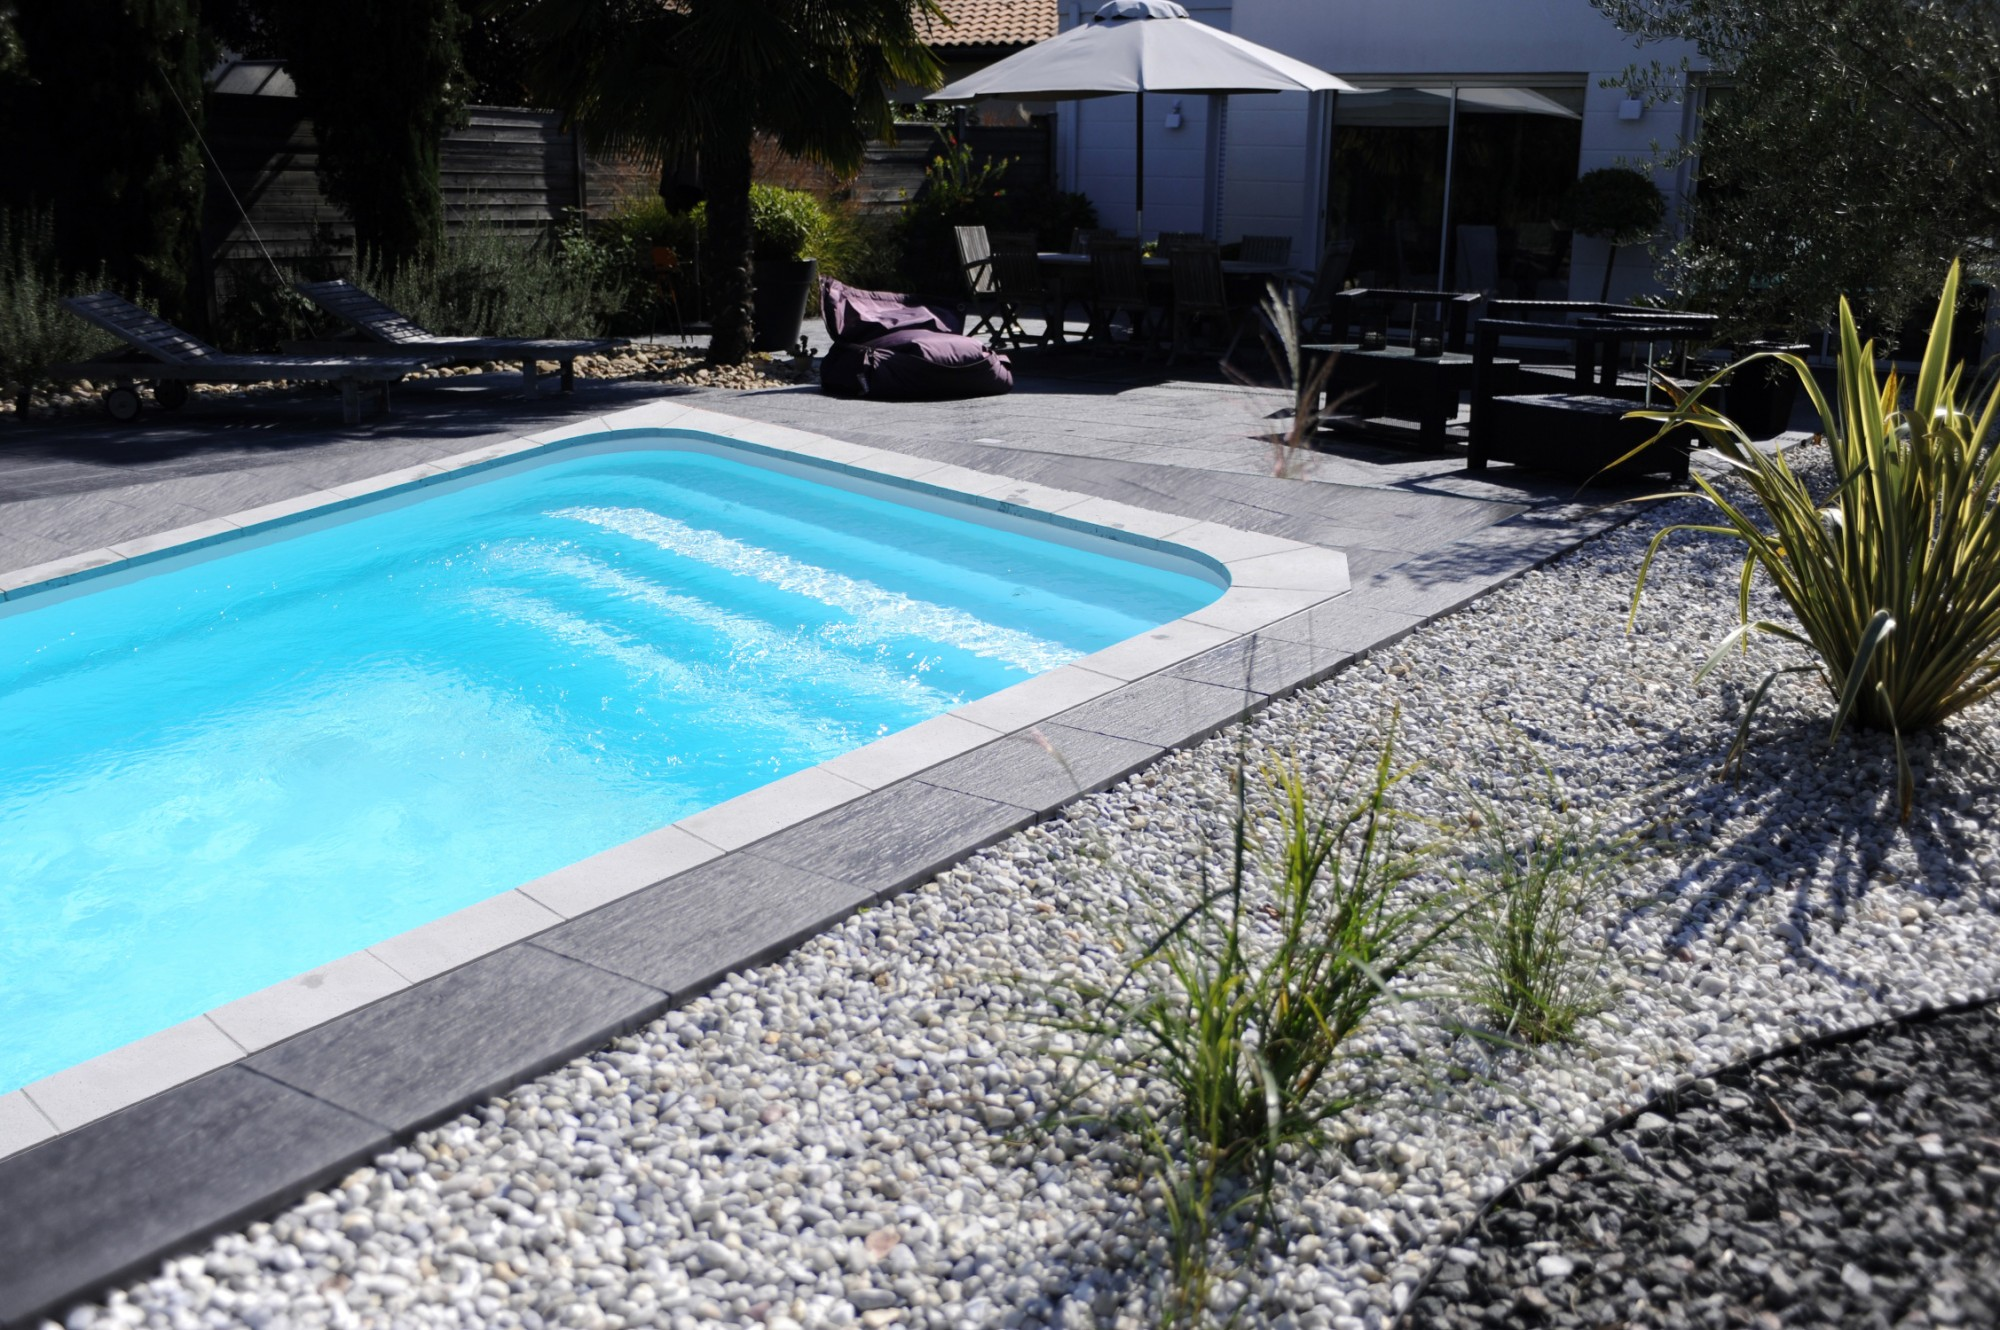 Tarif piscine coque enterr e 7x3 pose comprise narbonne for Tarif piscine enterree